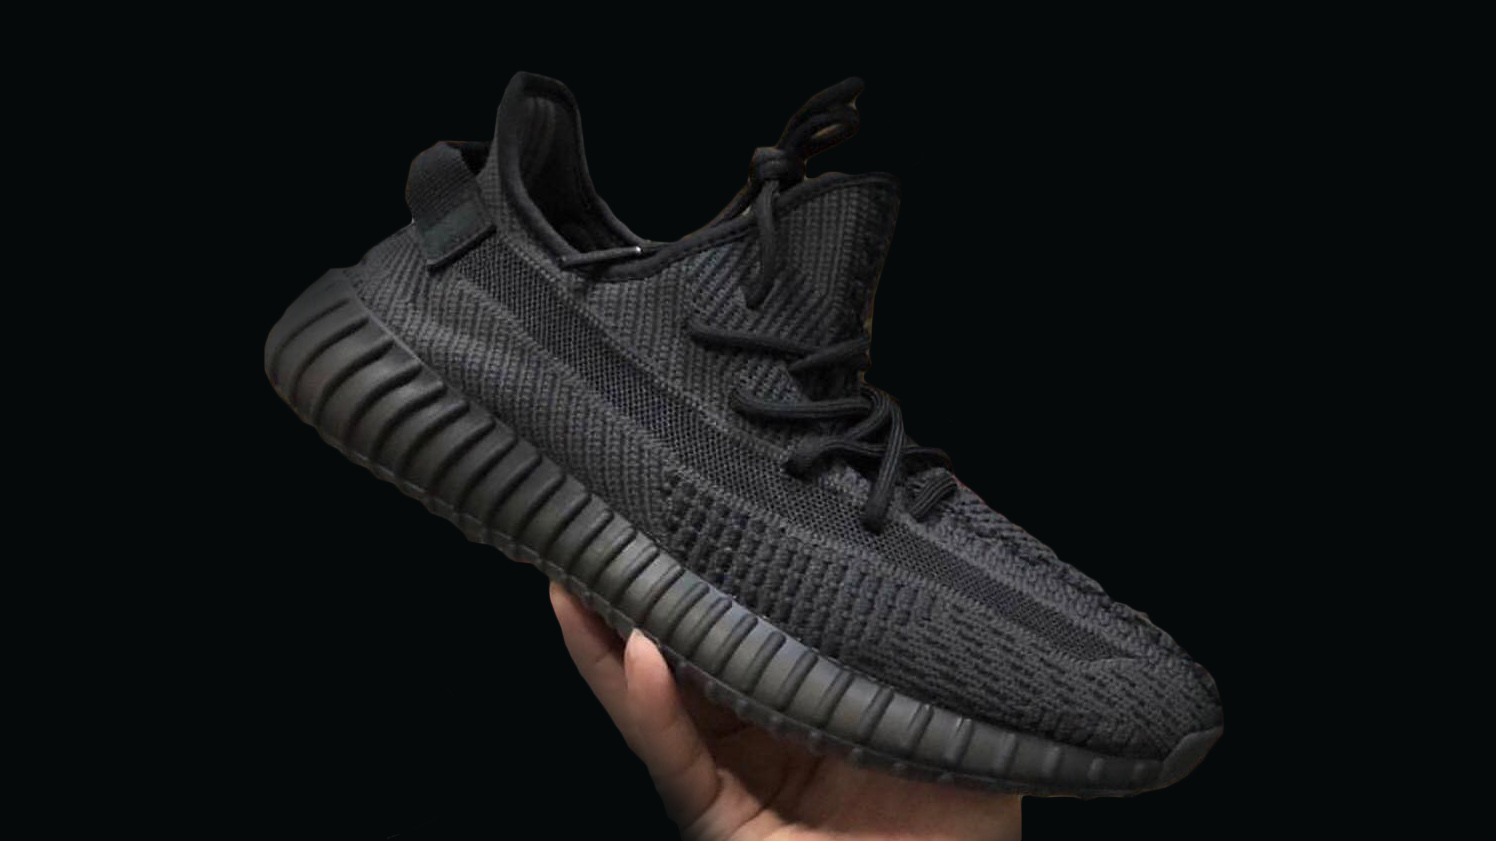 sale retailer a973f 5267d Yeezy Boost 350 V2 Antlia are coming next month • MVC Magazine